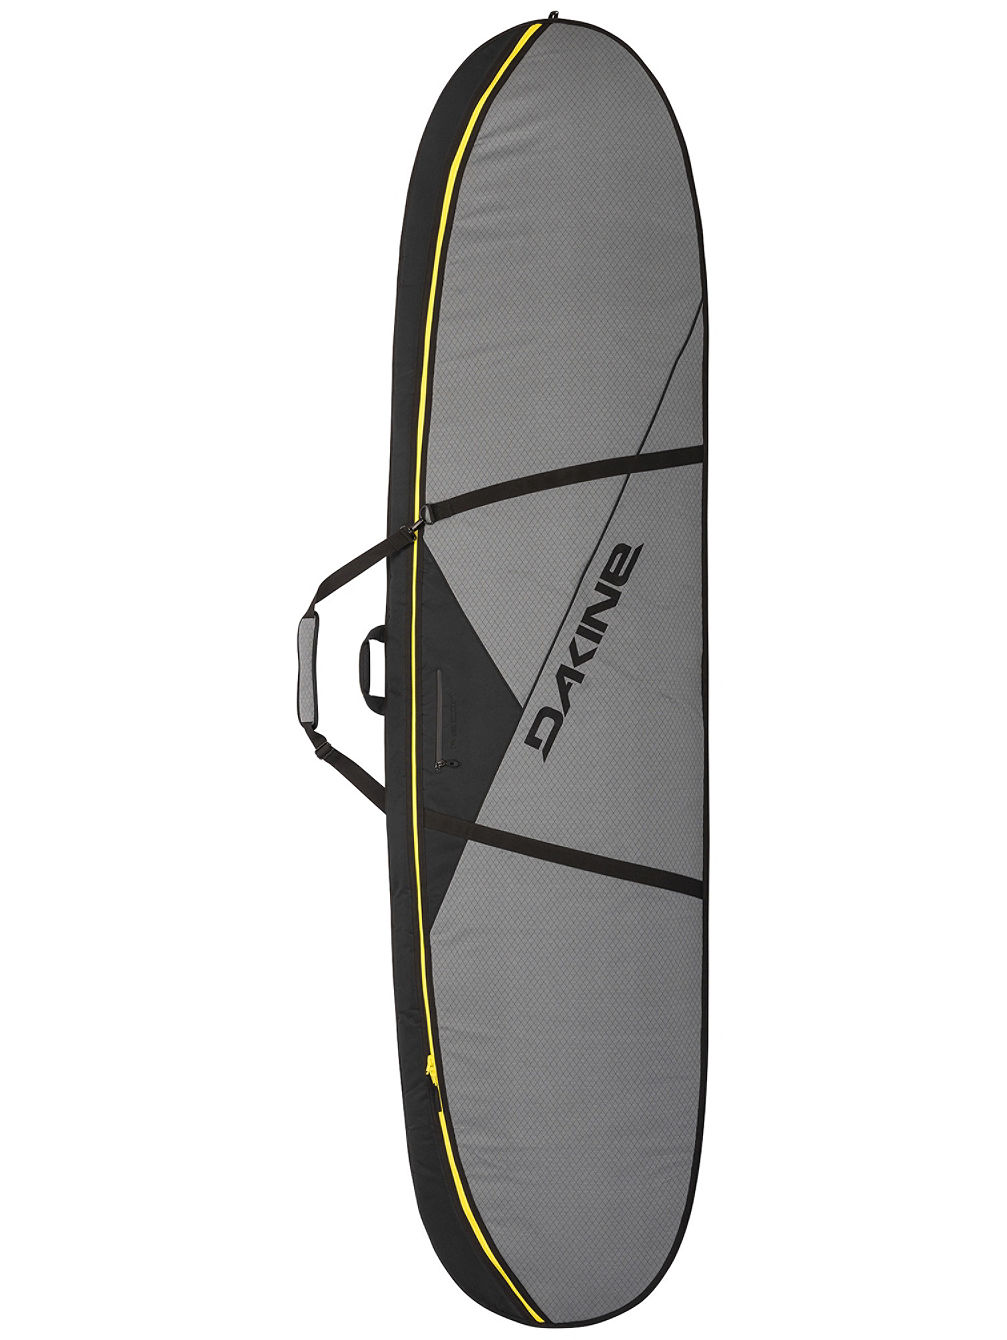 Recon Double Noserider 9'6'' Surfboard B